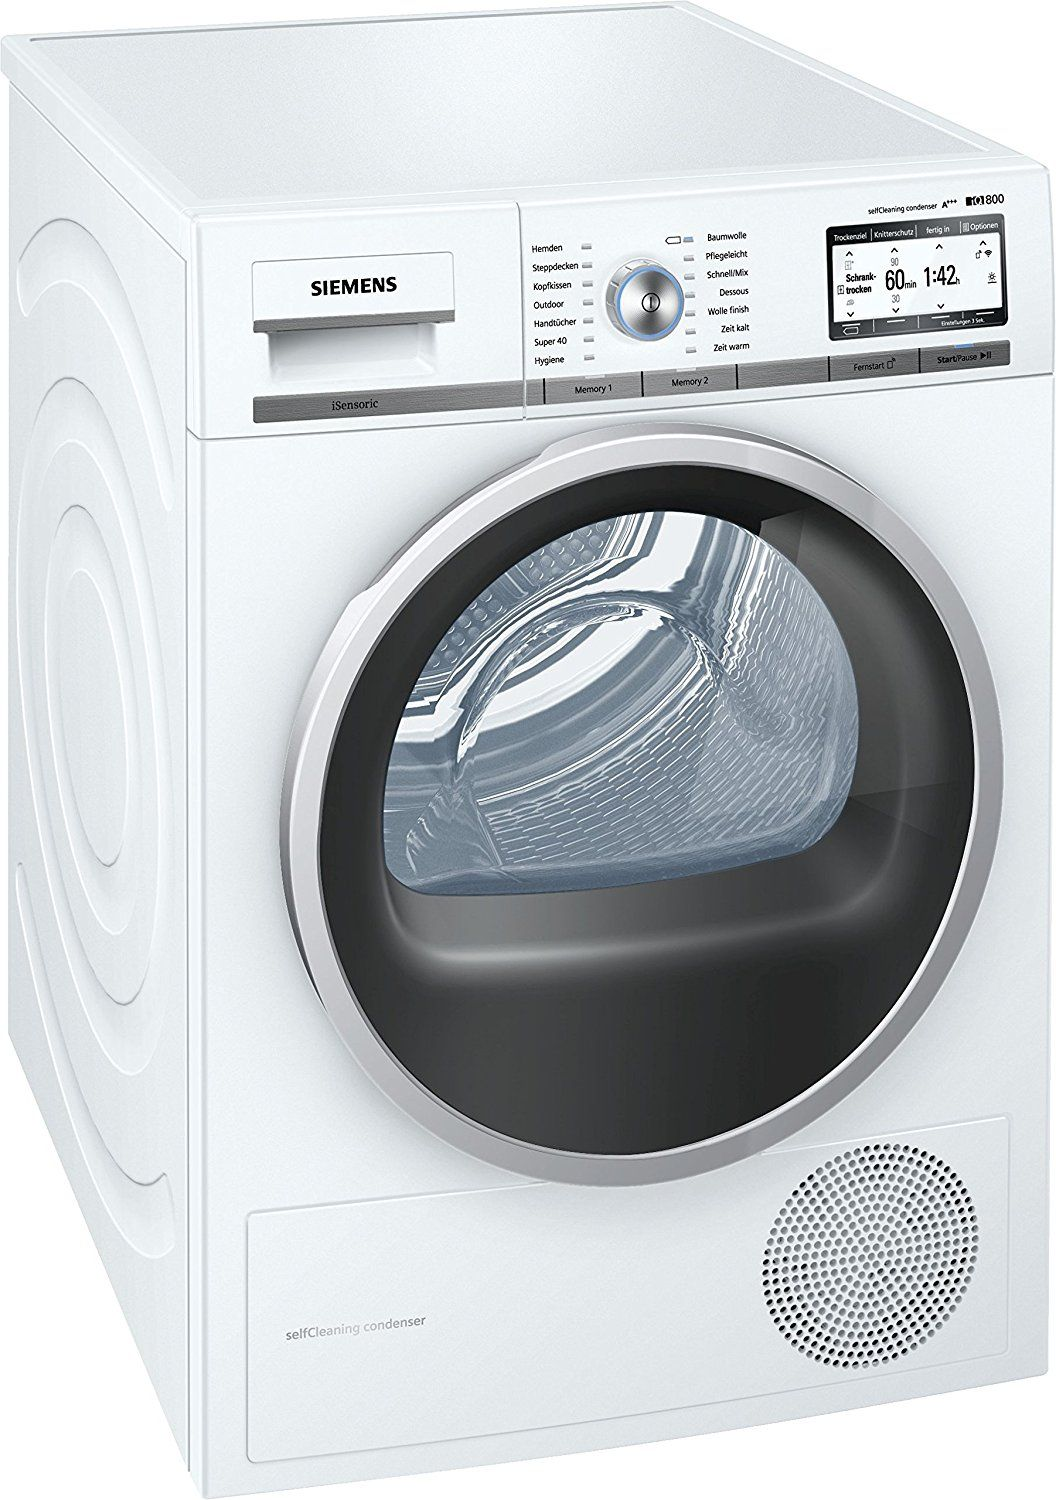 Siemens Wt7yh7 W0 Iq800 Home Connect Selfcleaning